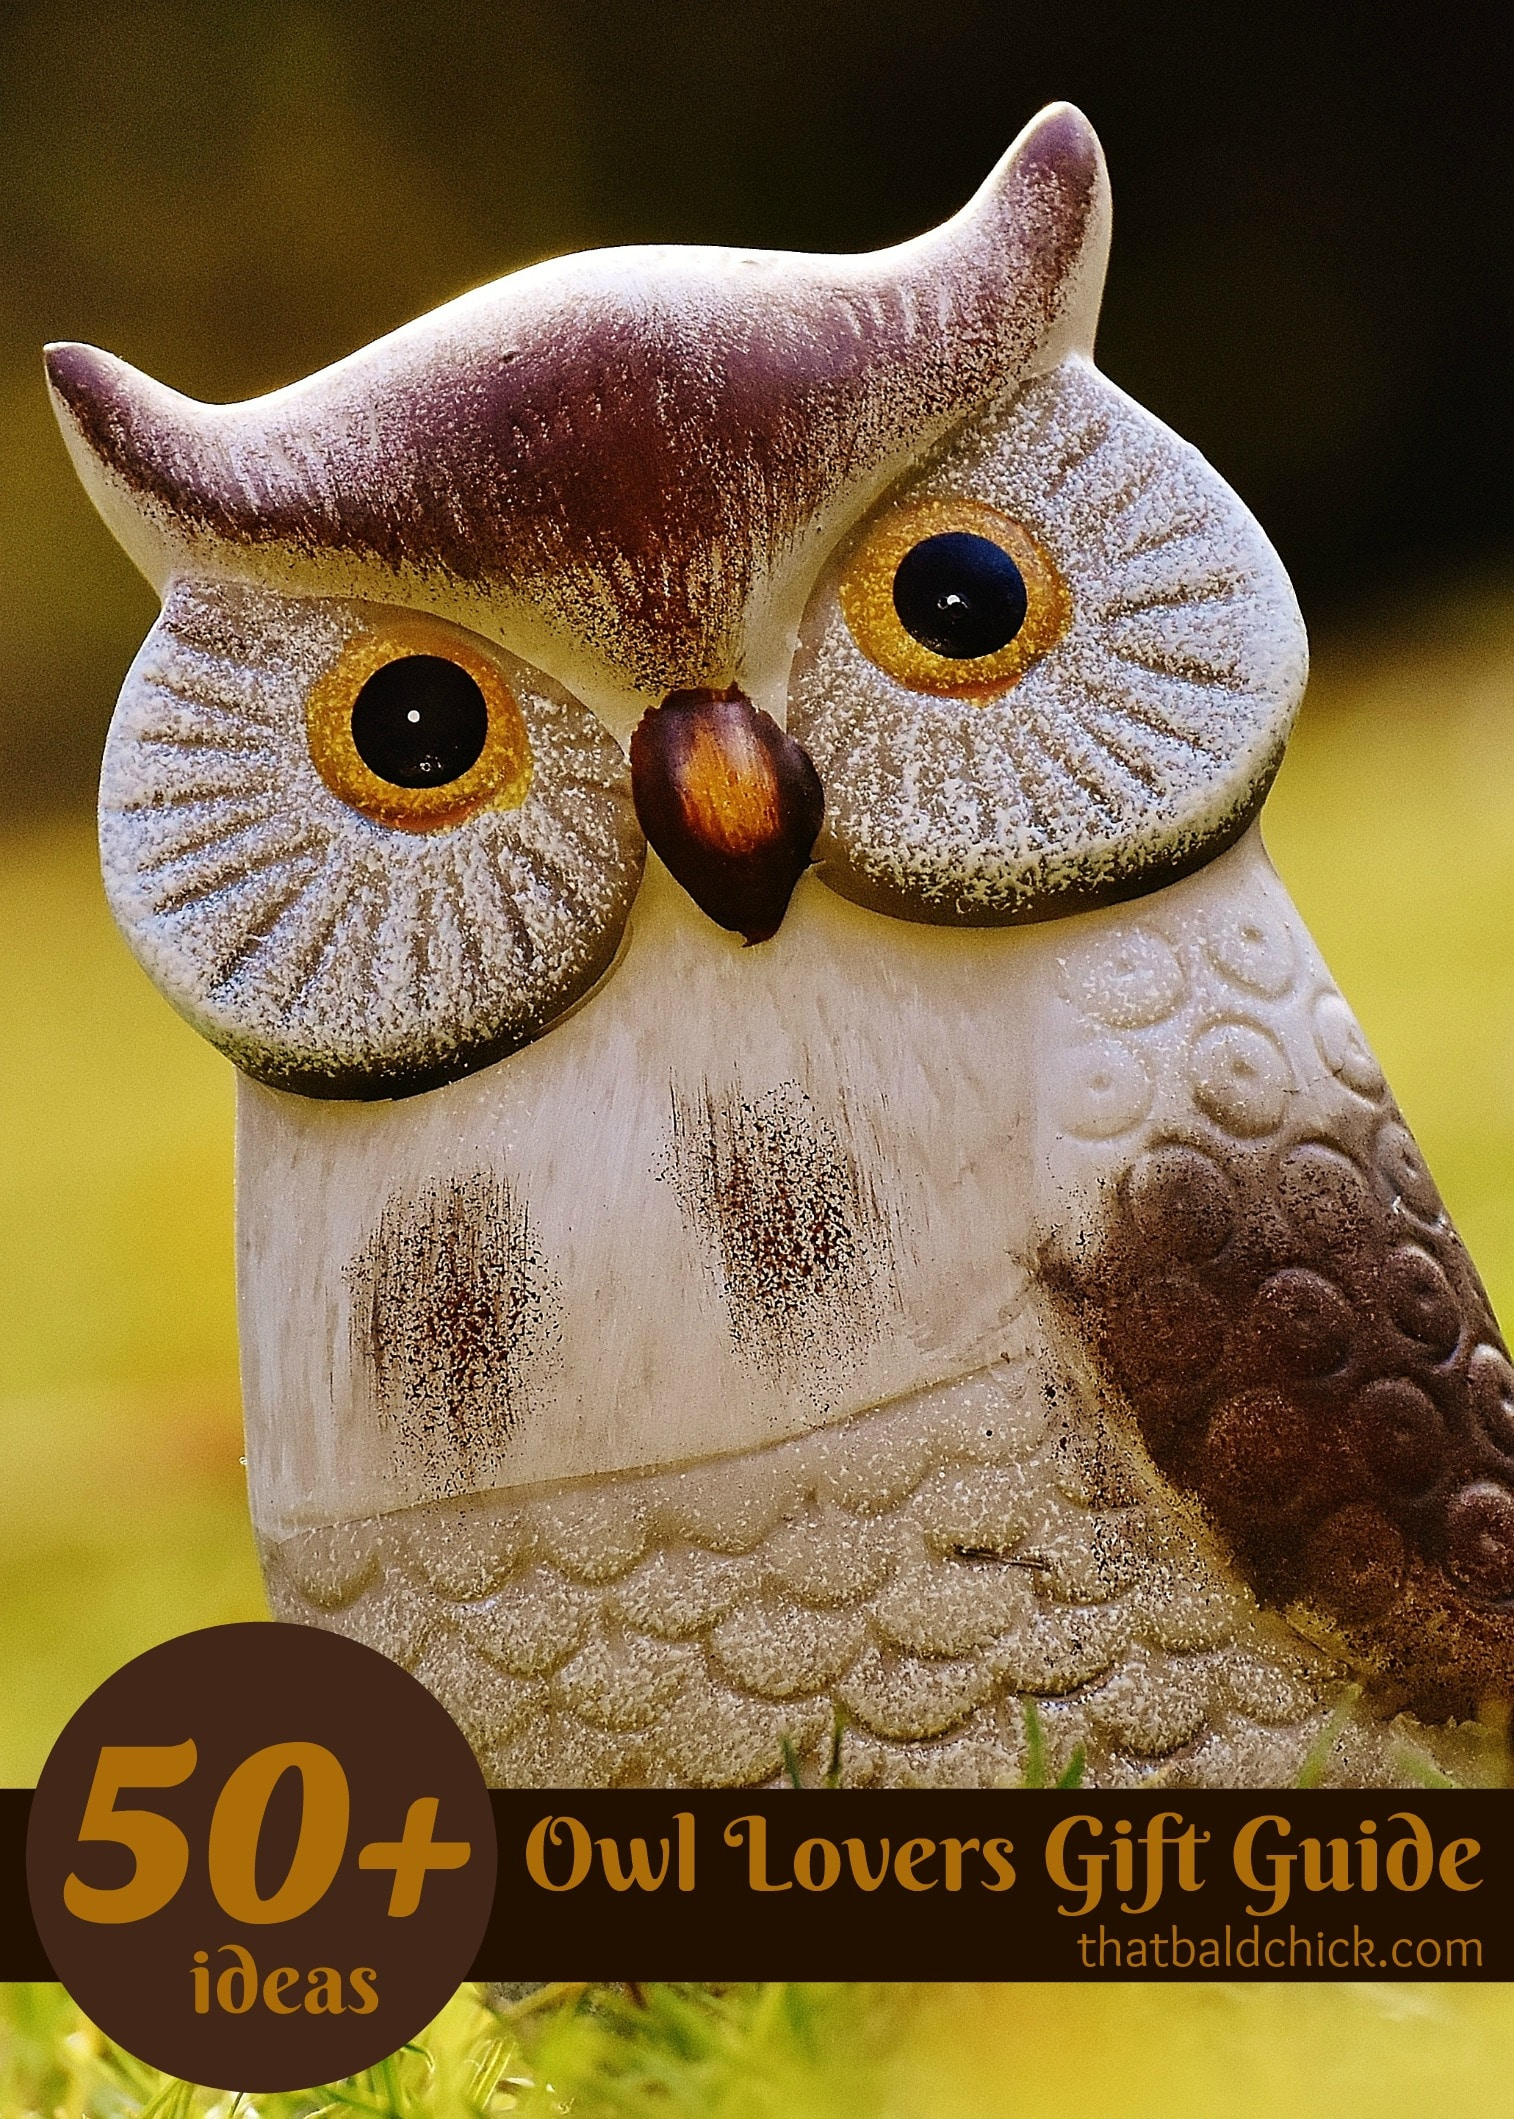 Owl lovers gift guide with over 50 gift ideas at thatbaldchick.com